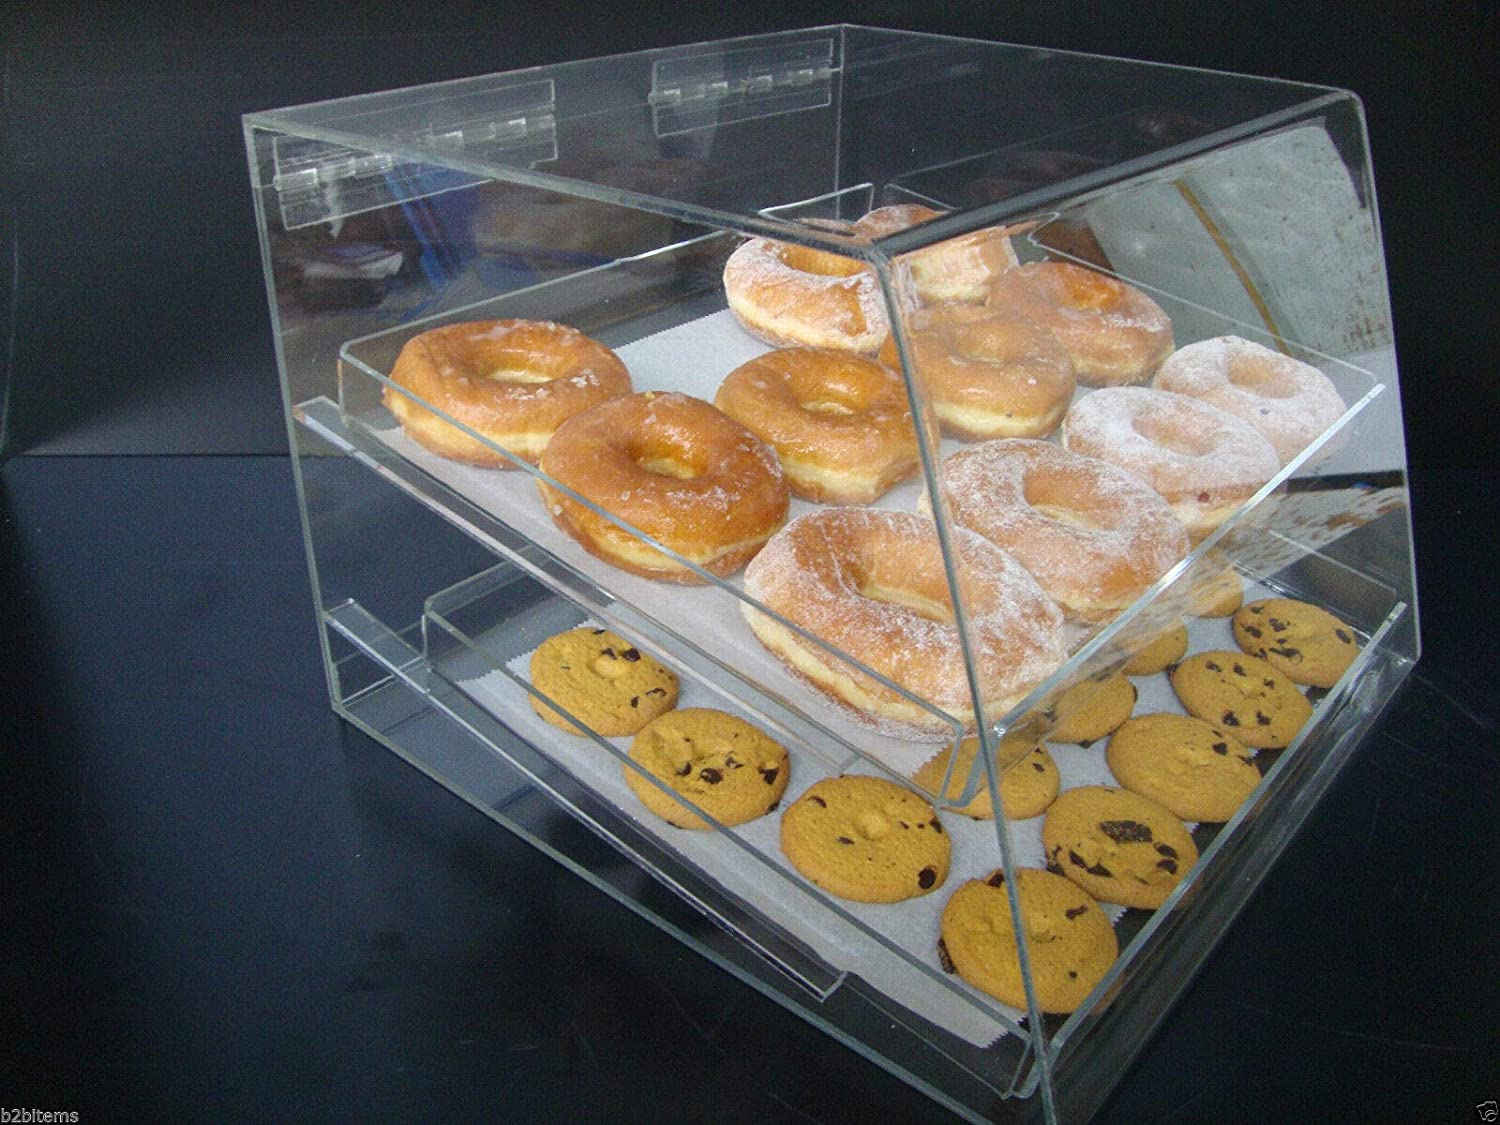 305Displays Acrylic 35% OFF Case w 2 trays Bagels Pastry Donut Animer and price revision Co Bakery